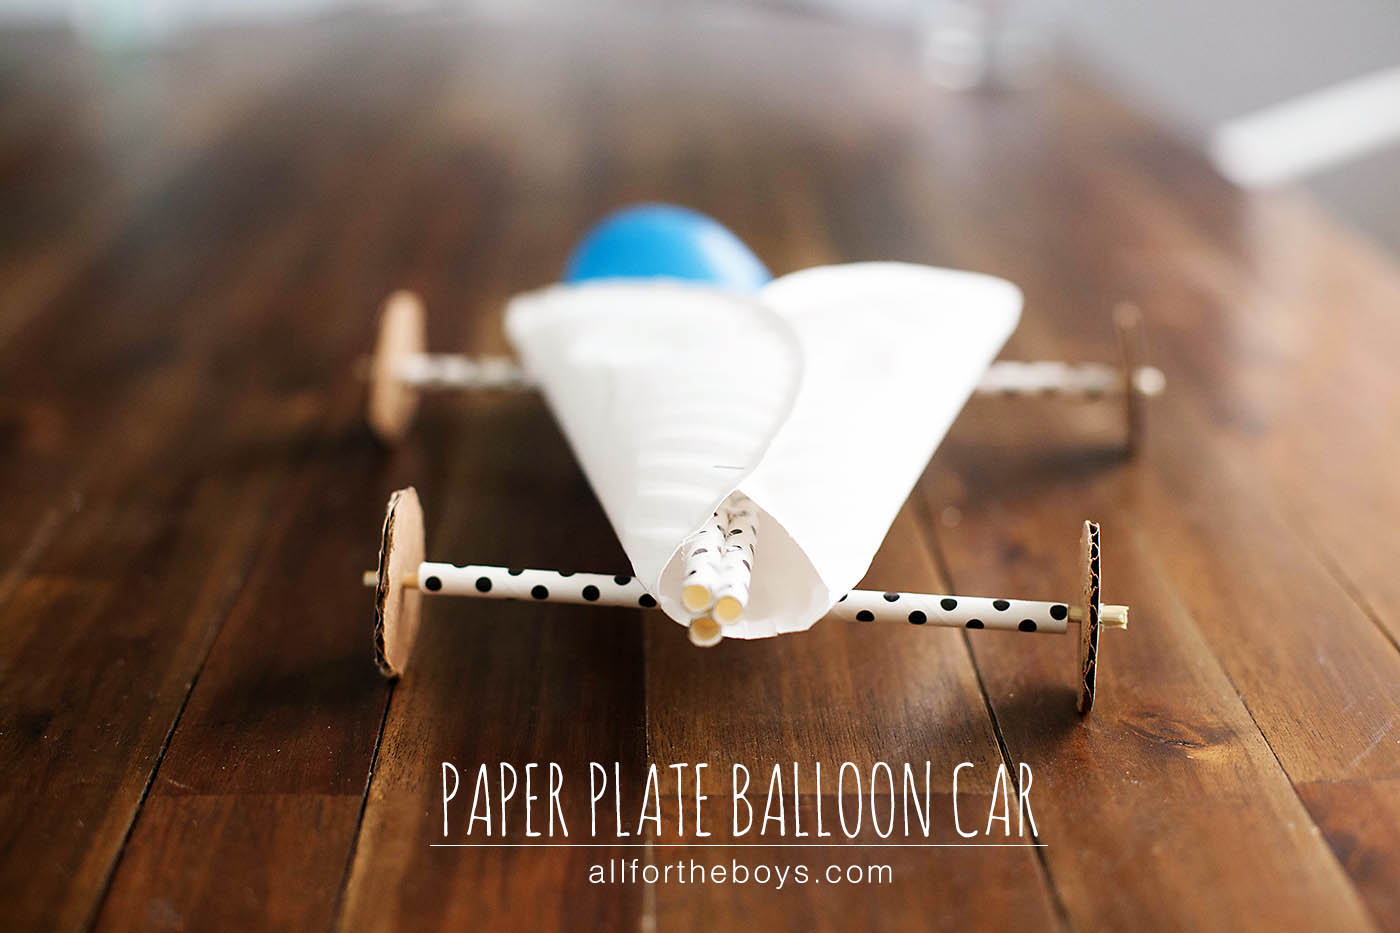 & Paper Plate Balloon Car \u2014 All for the Boys